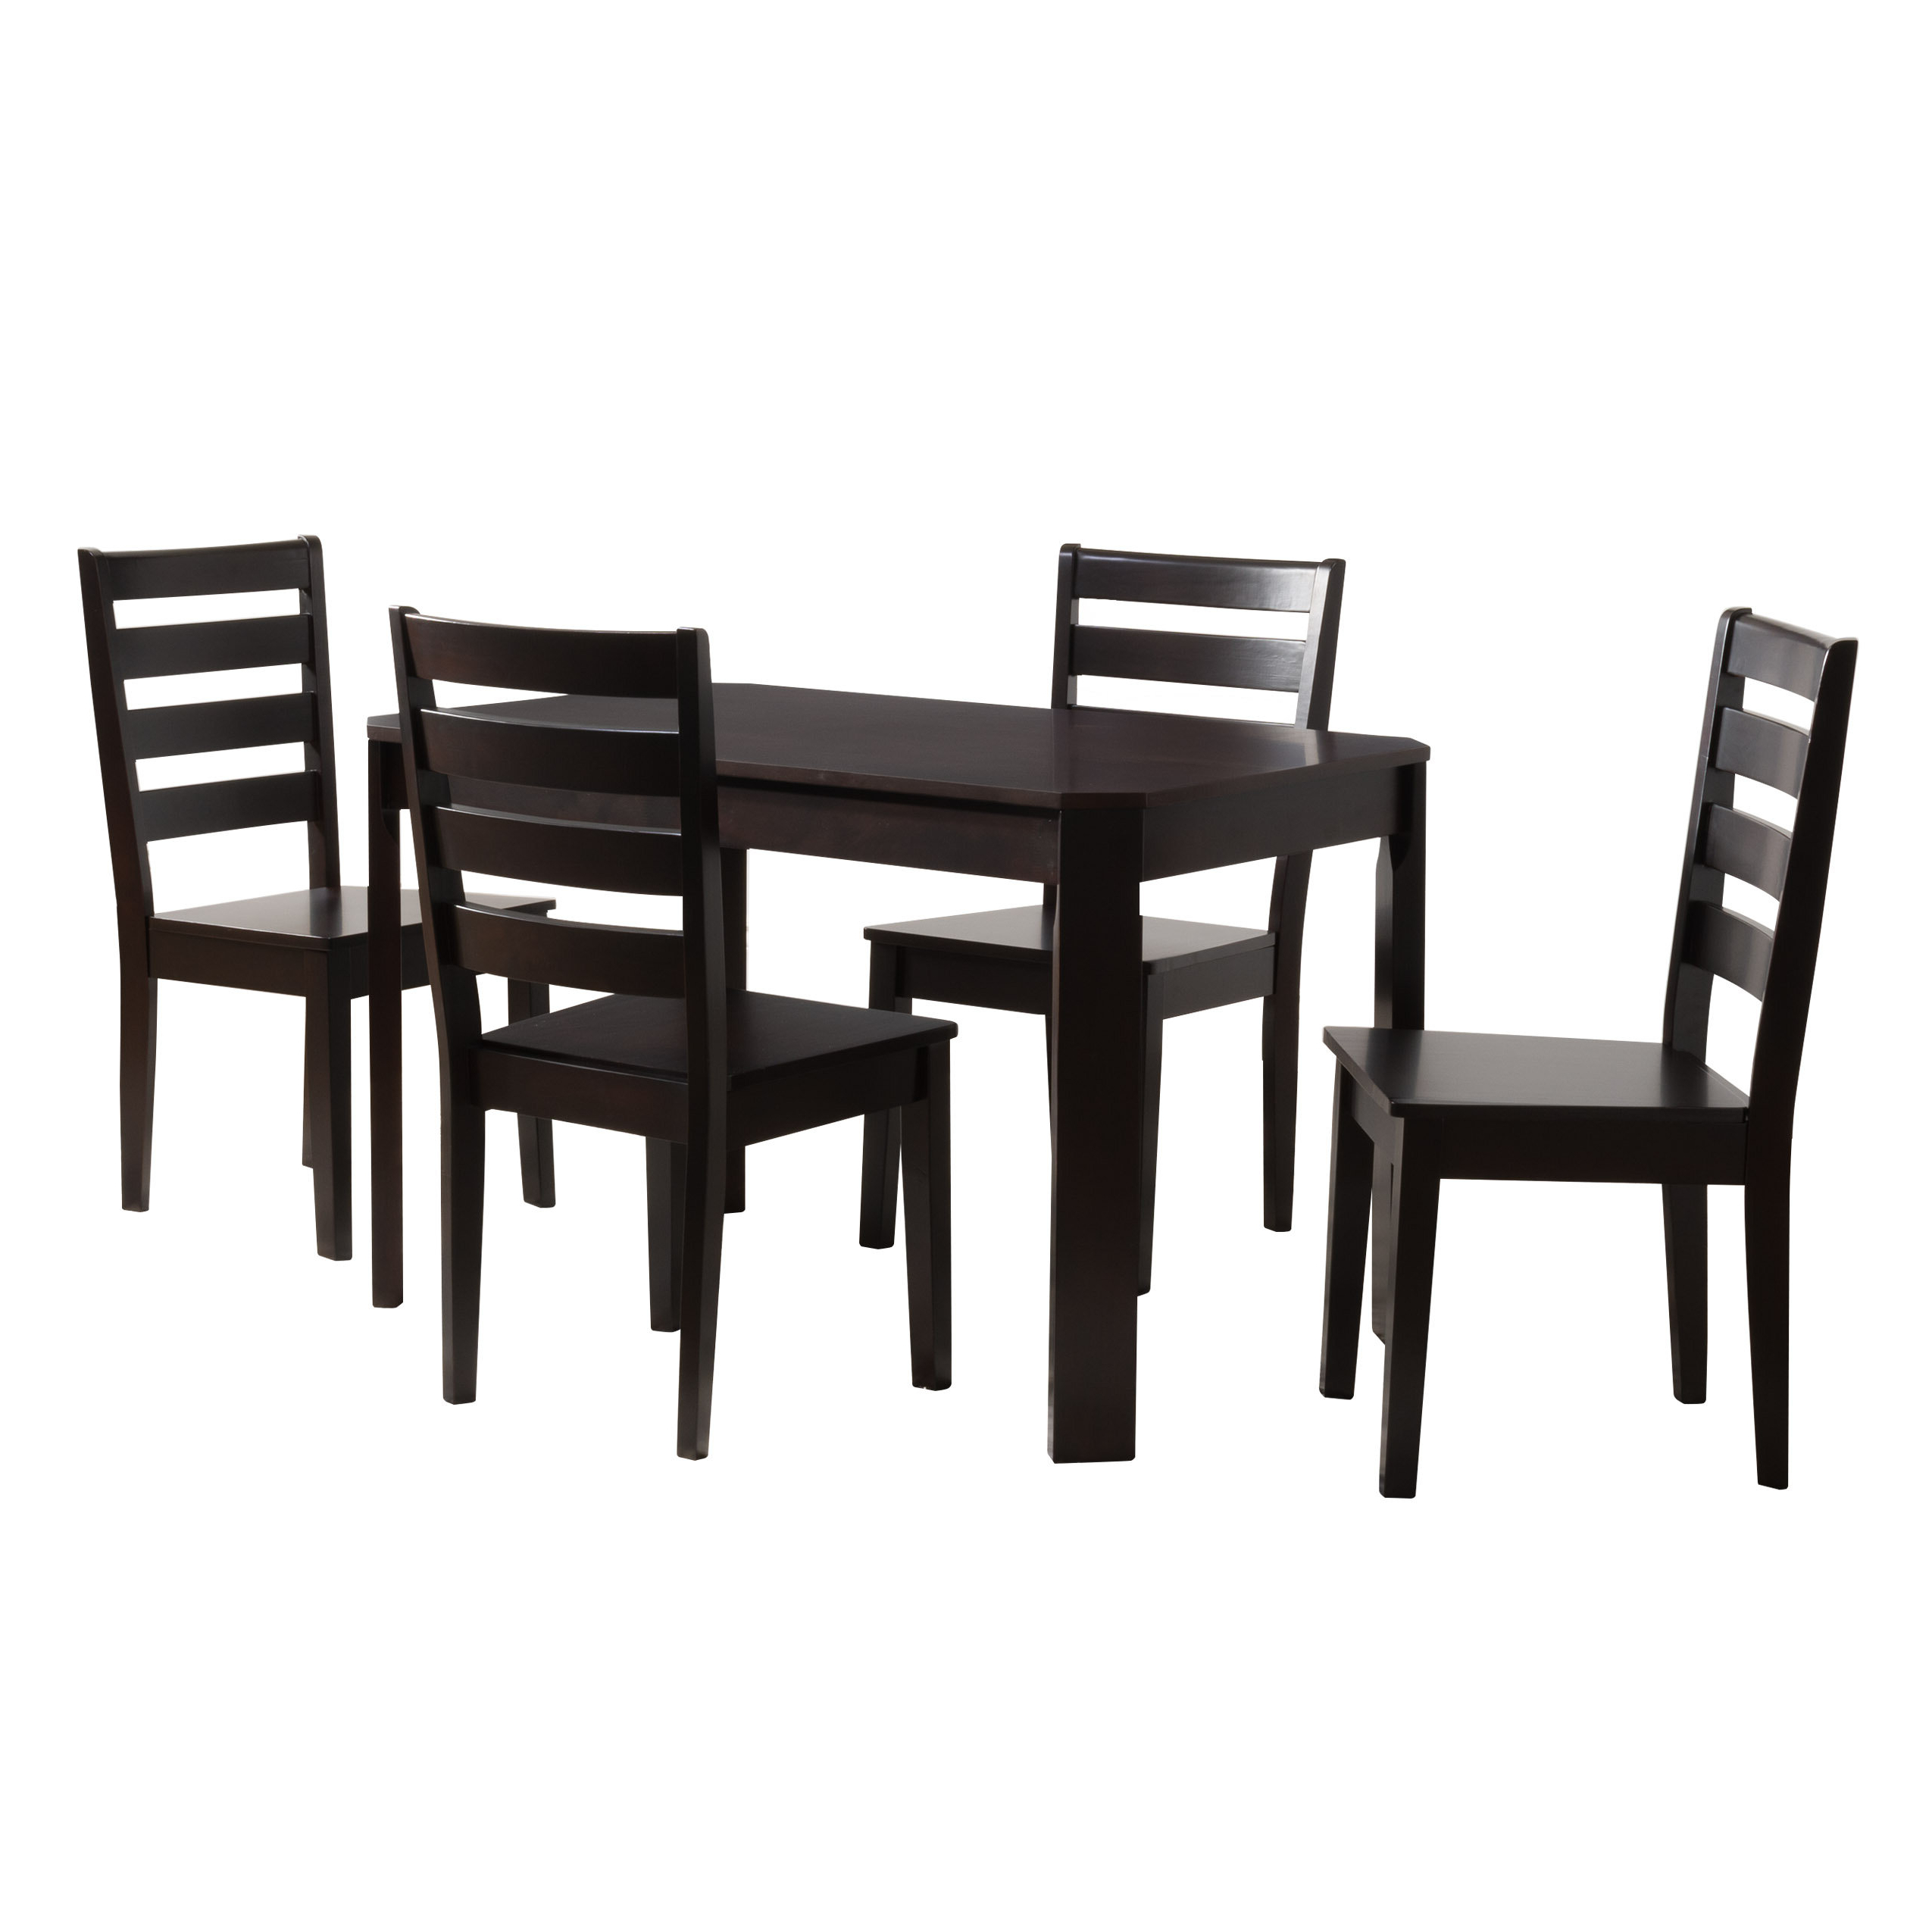 Goodman 5 Piece Solid Wood Dining Set Throughout Famous Goodman 5 Piece Solid Wood Dining Sets (Set Of 5) (View 7 of 20)